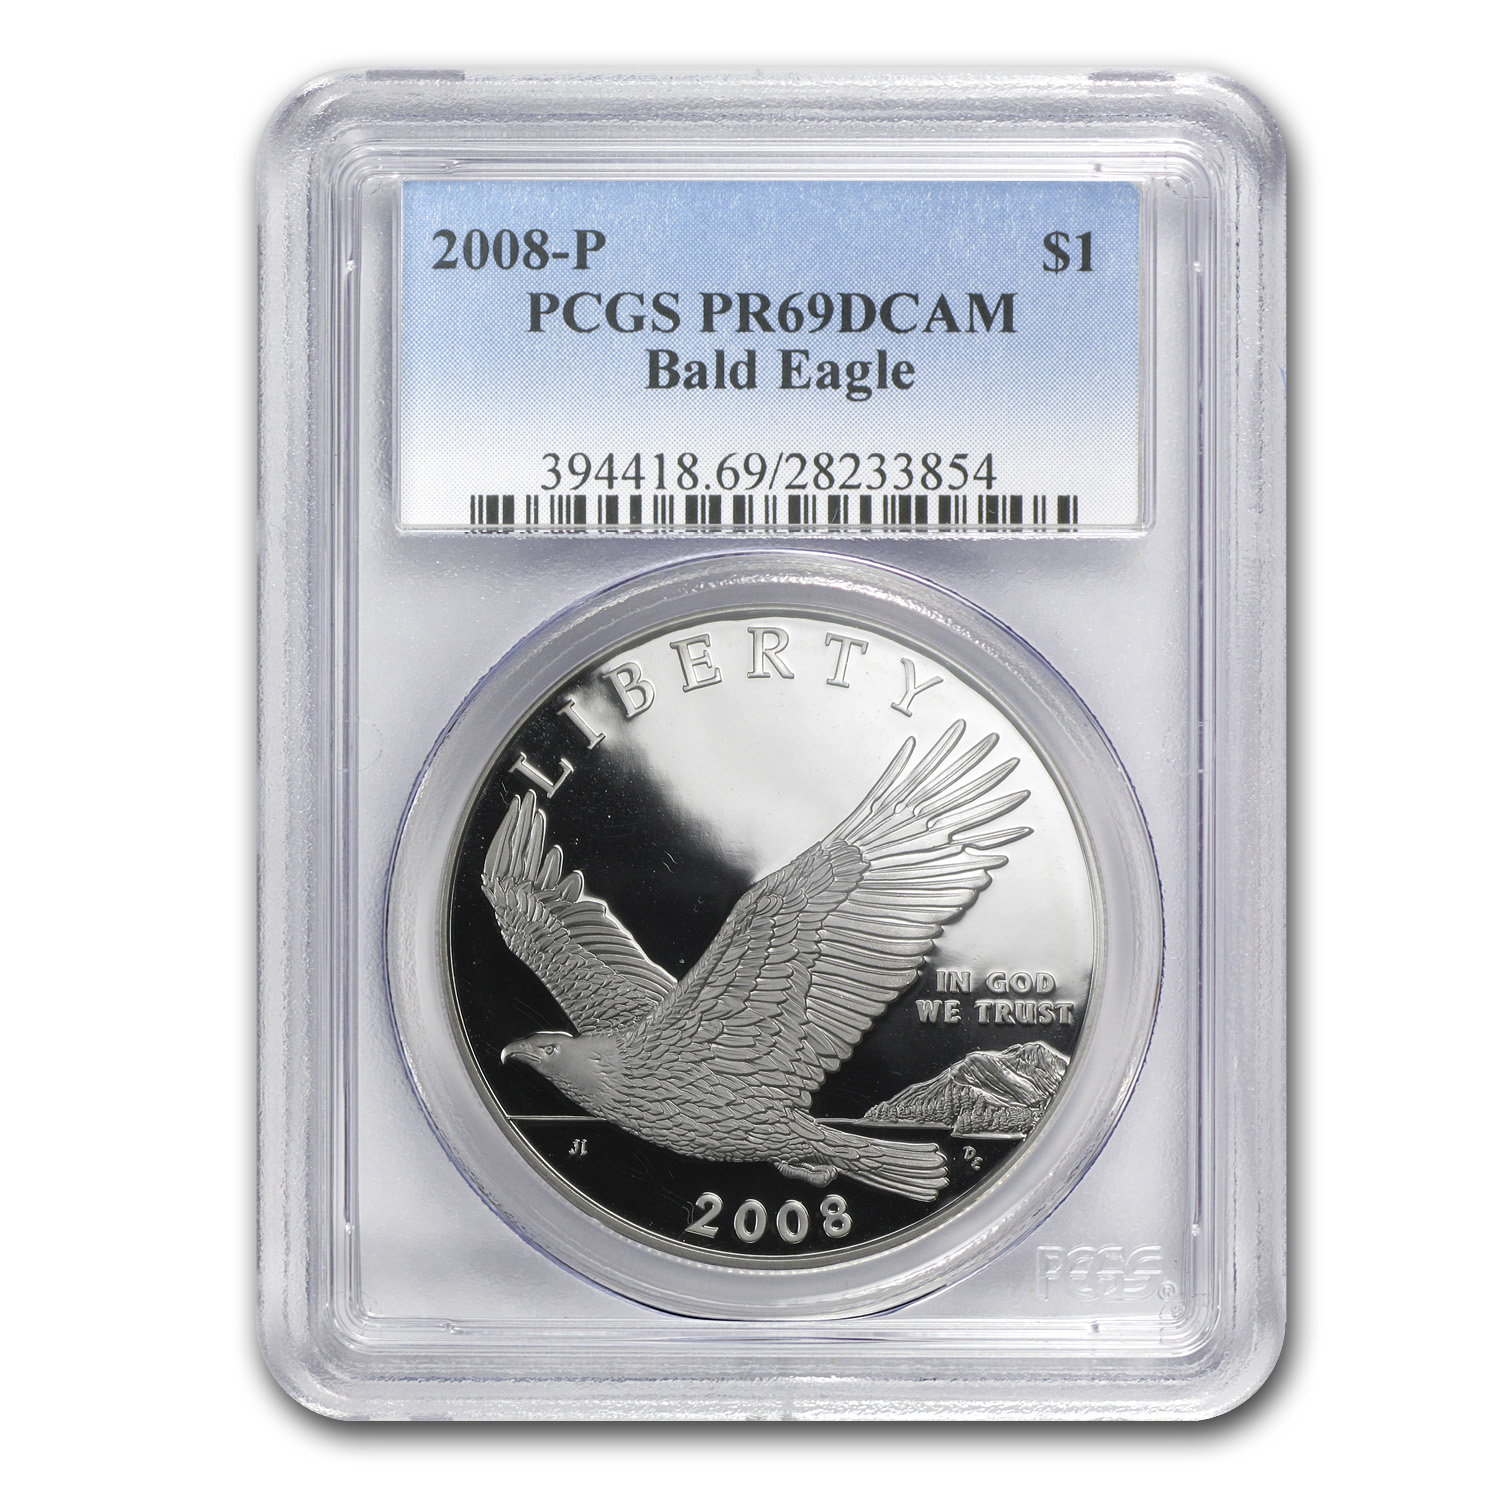 2008-P Bald Eagle $1 Silver Commemorative PR-69 PCGS